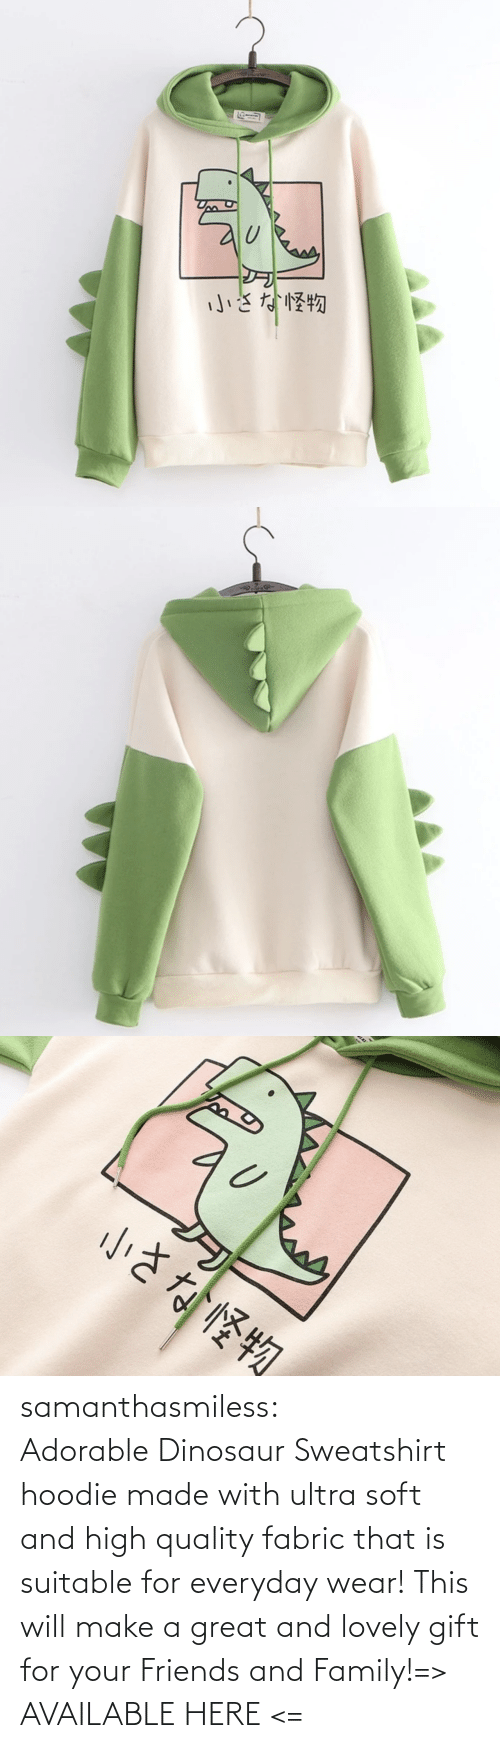 family: samanthasmiless:  Adorable Dinosaur Sweatshirt hoodie made with ultra soft and high quality fabric that is suitable for everyday wear! This will make a great and lovely gift for your Friends and Family!=> AVAILABLE HERE <=